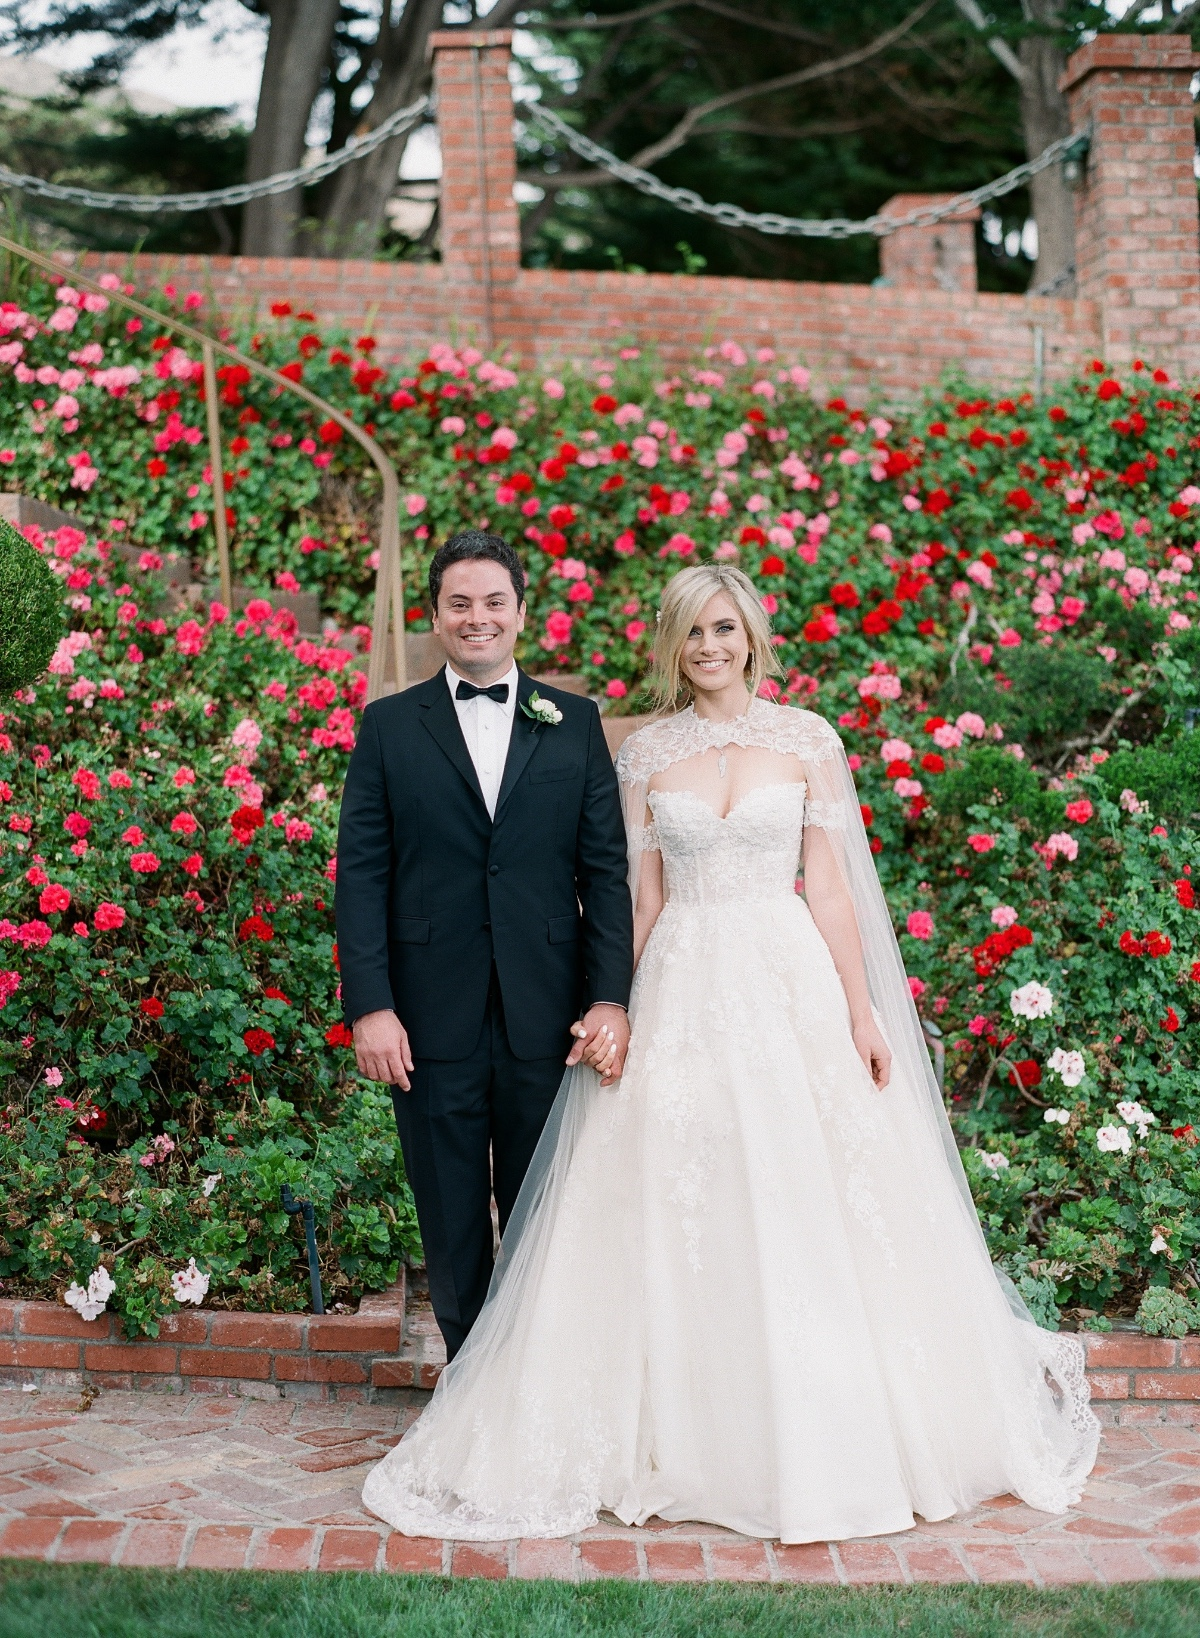 Megan and Sean, from Lifetime's Marrying Millions wedding